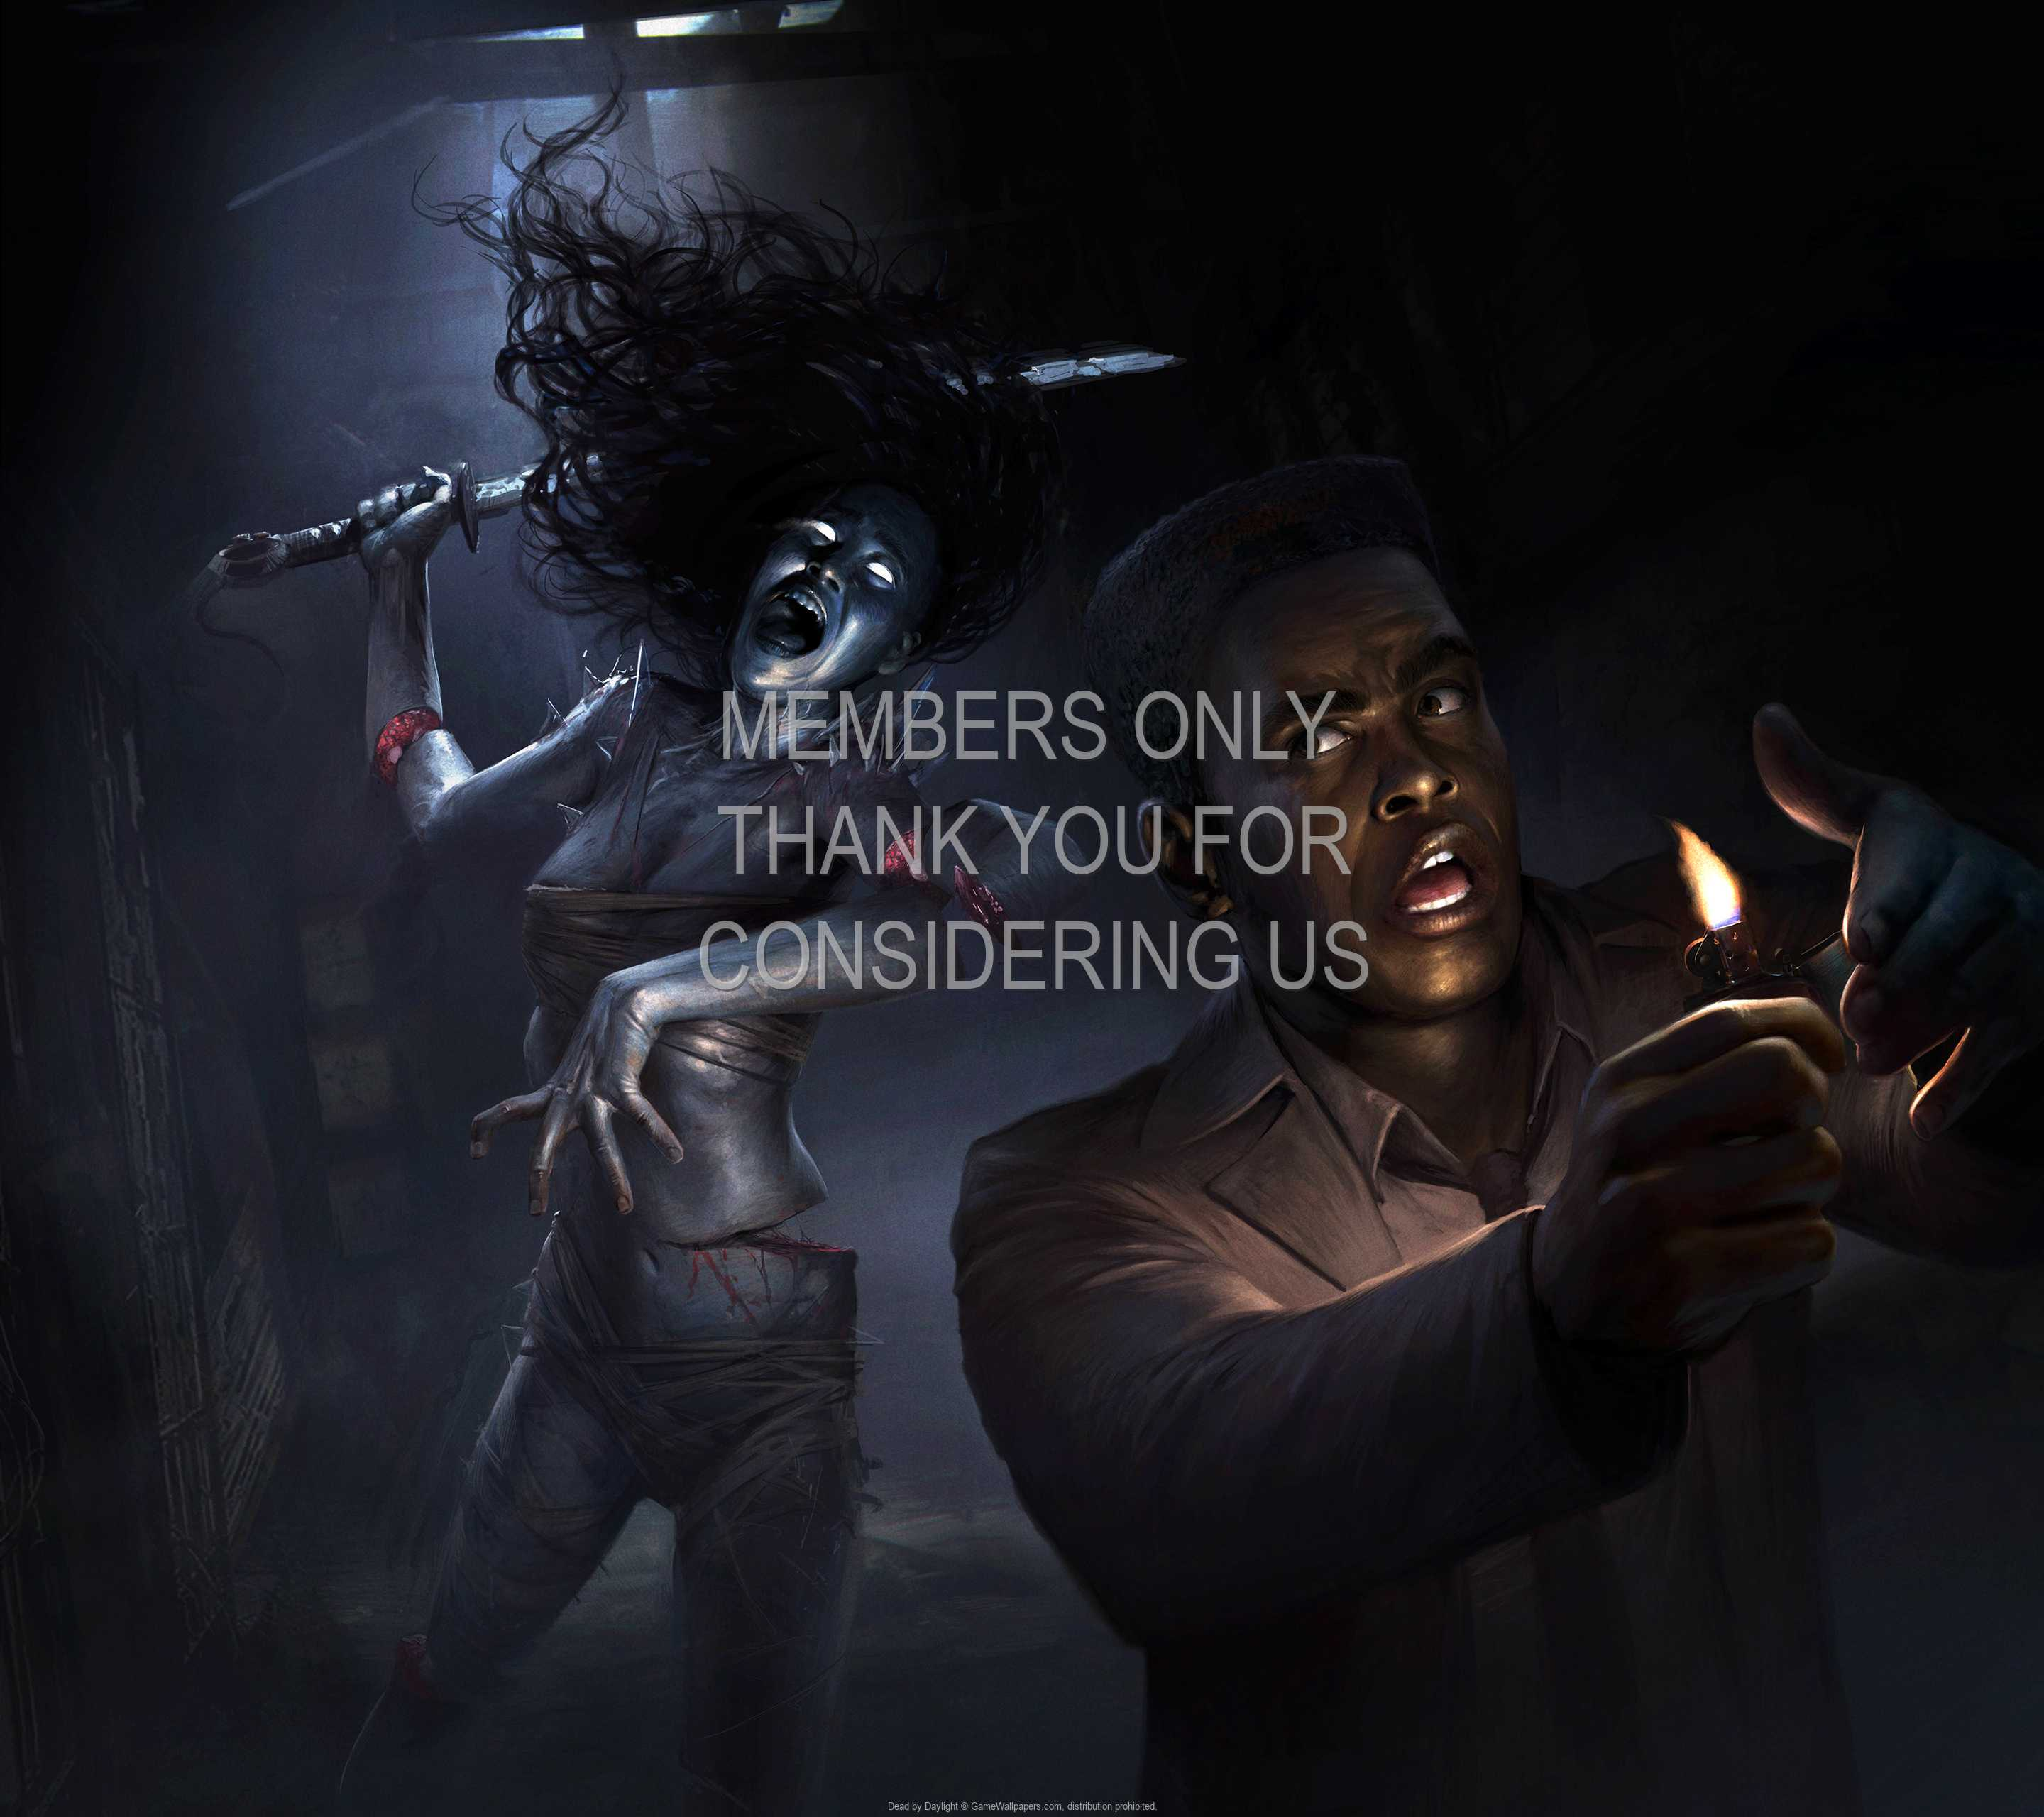 Dead by Daylight 1440p Horizontal Mobiele achtergrond 02